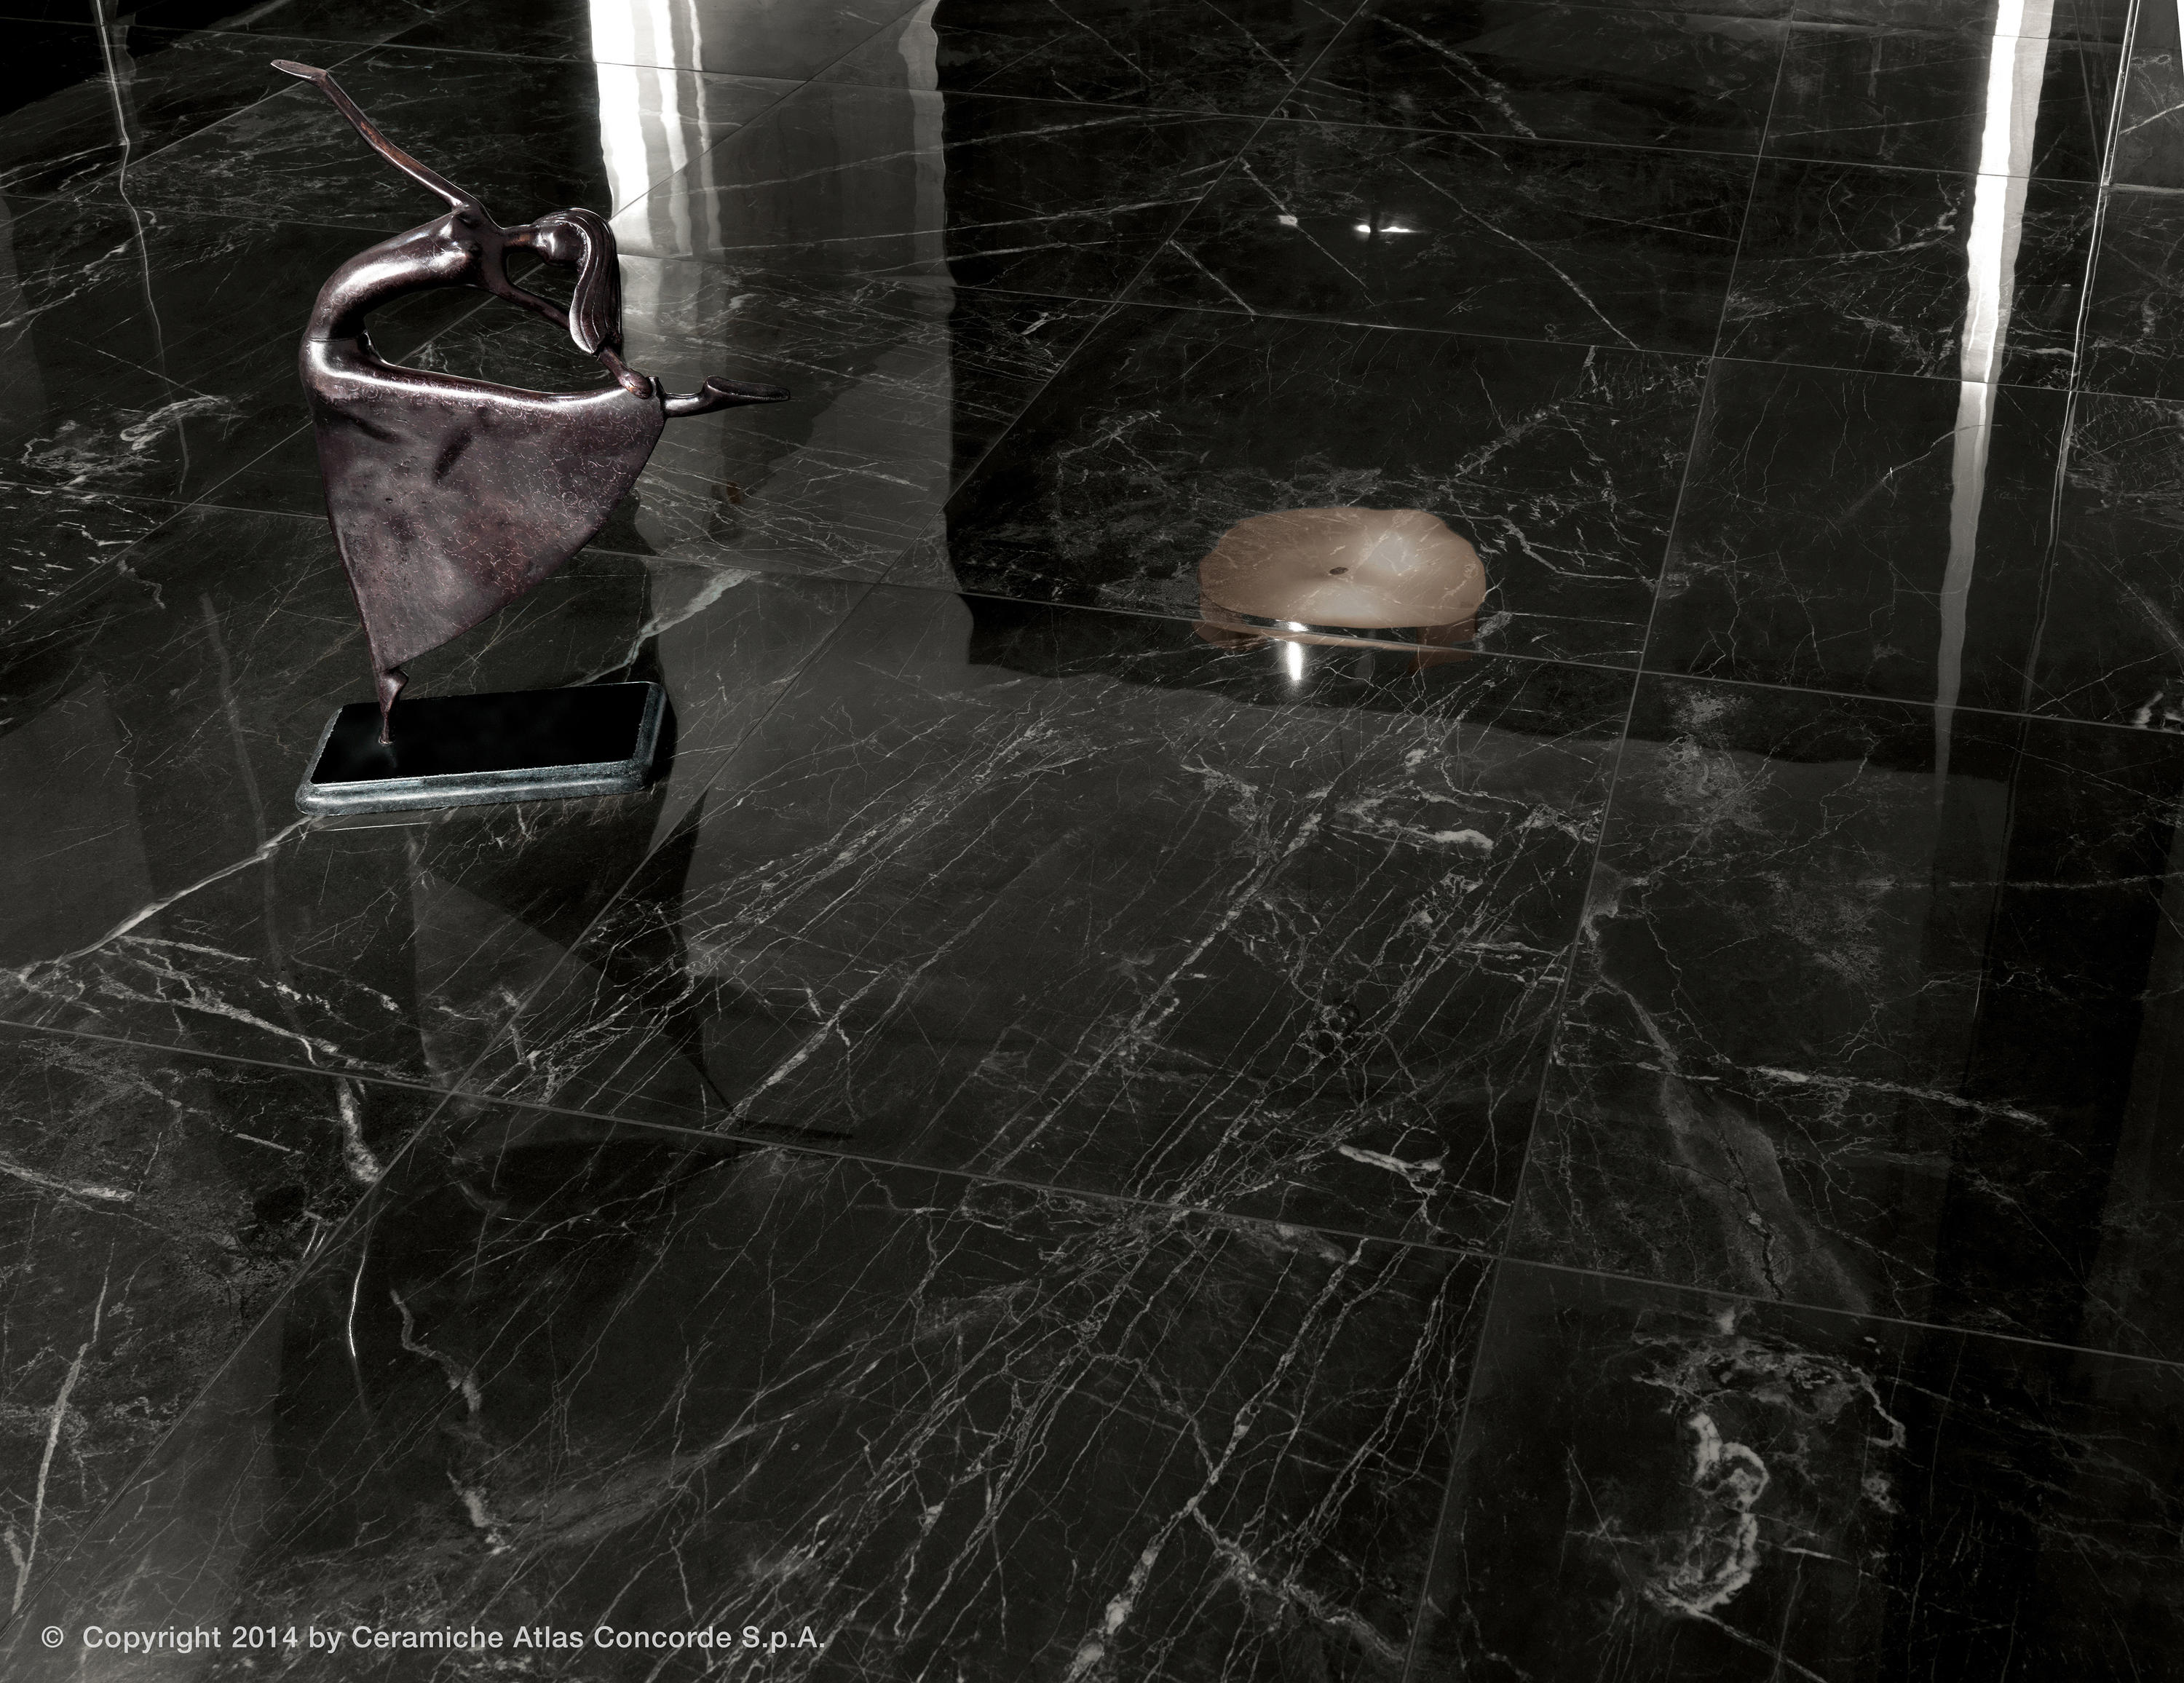 Marvel Pro Statuario Select Floor Honed Ceramic Tiles From Atlas